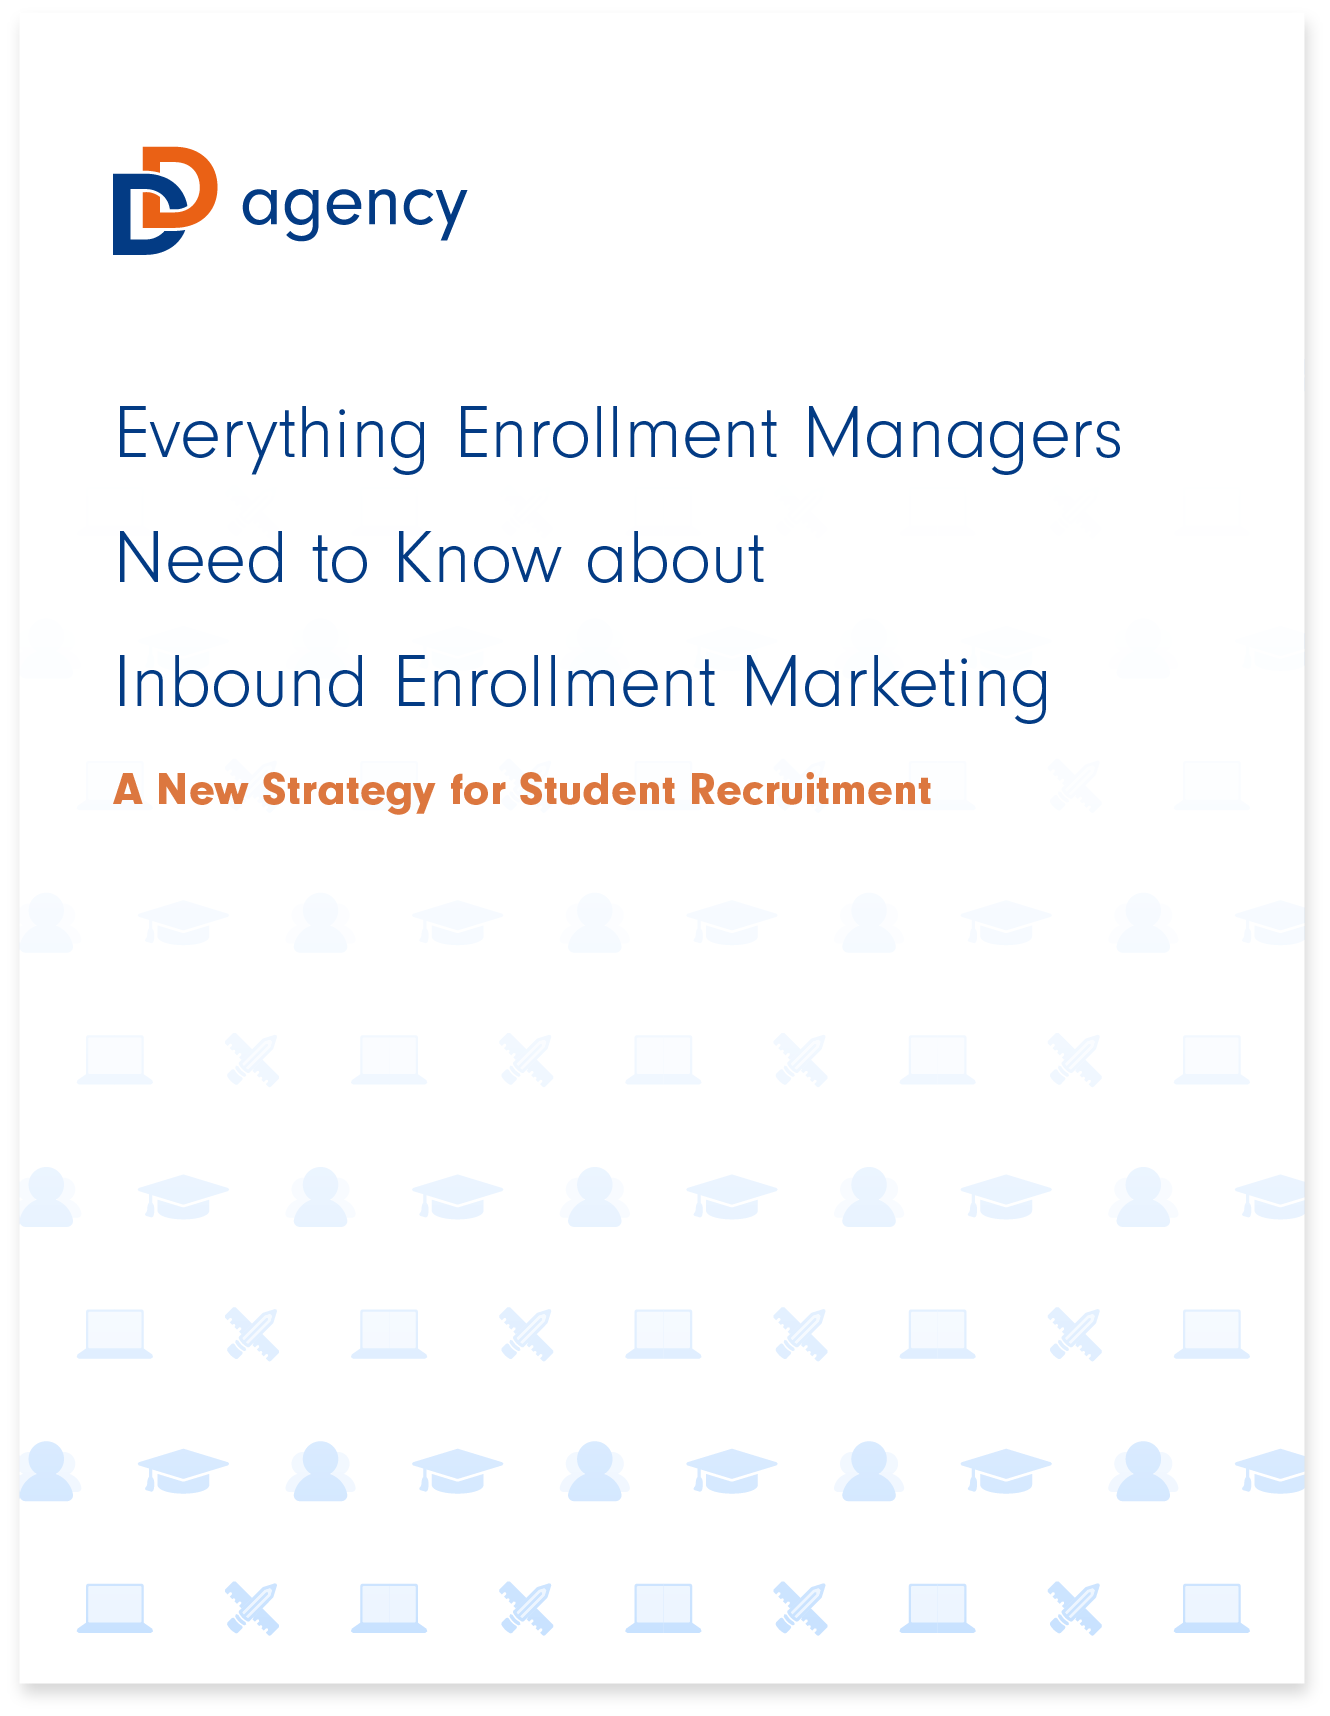 Inbound-enrollment-marketing